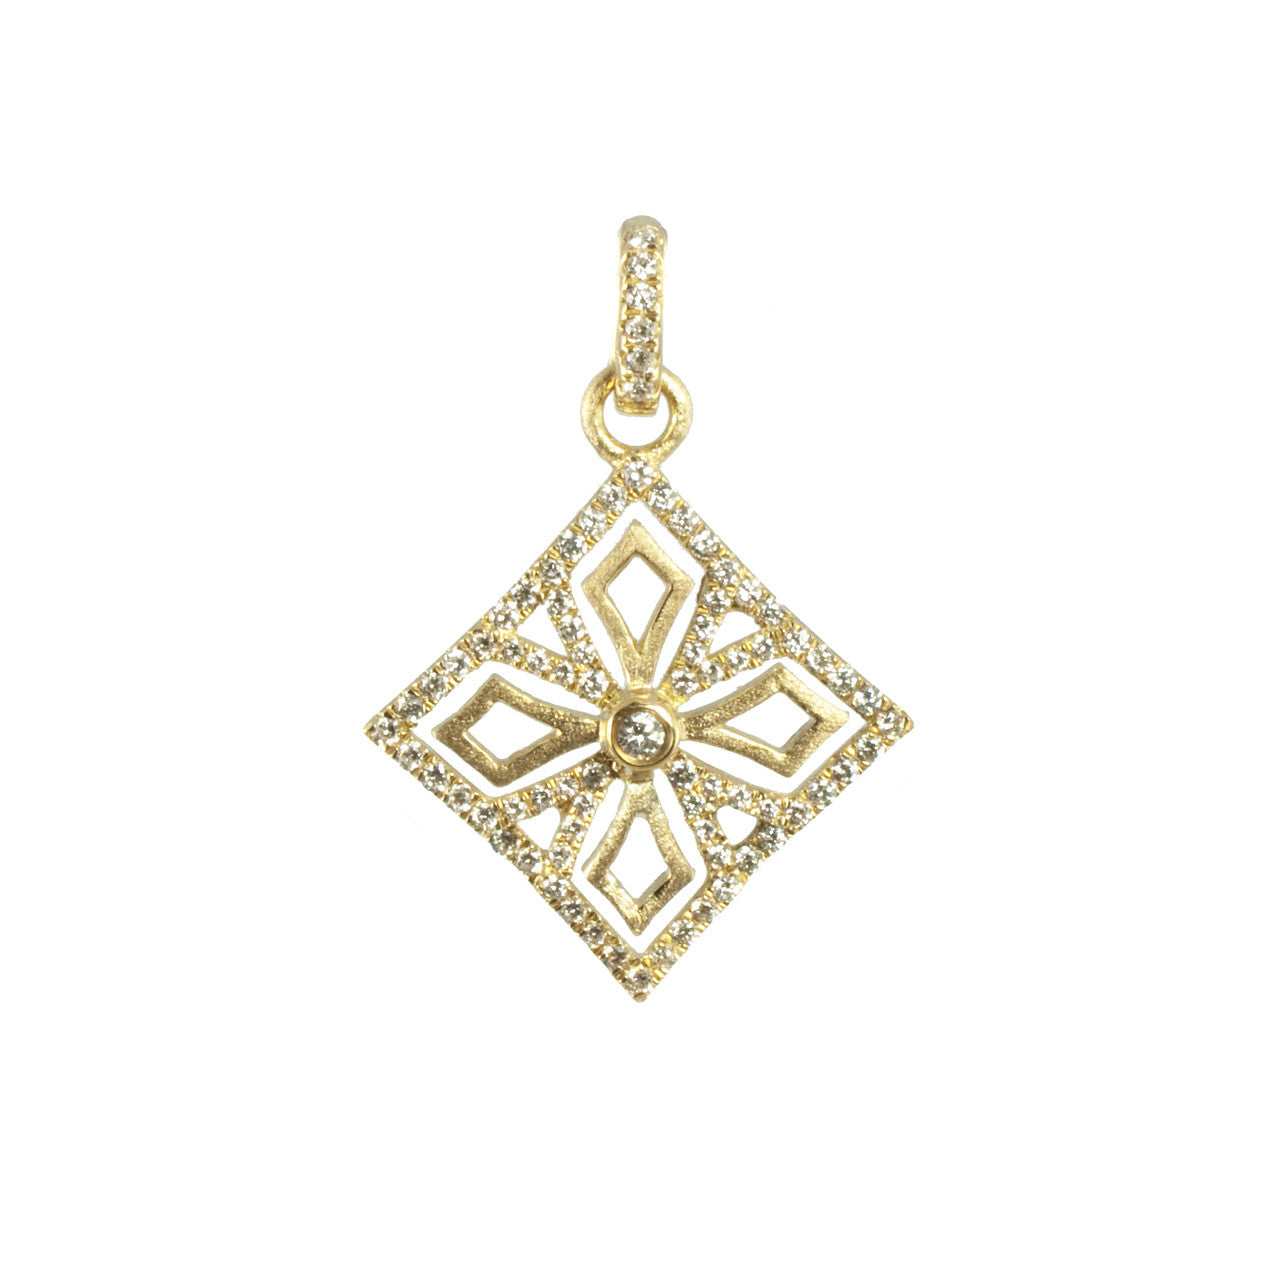 Laura pearce ltd 18k yellow gold maltese cross pendant katie decker 18 karat yellow gold maltese cross pendant aloadofball Image collections